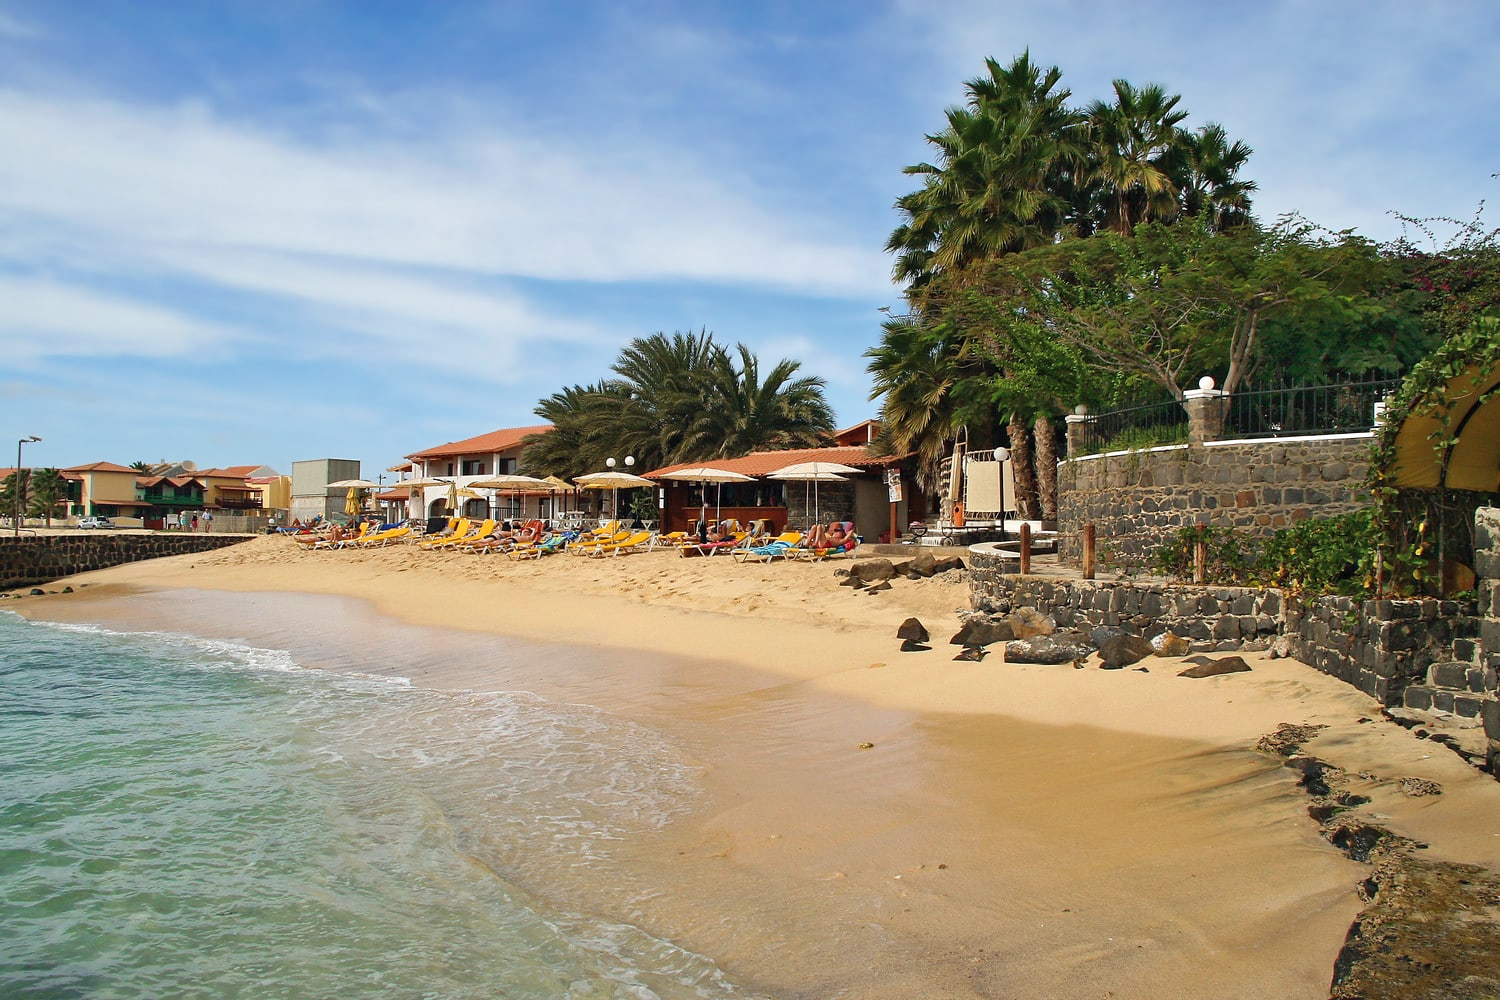 Private beach at Odjo d'Agua, Santa Maria, Sal, Cape Verde